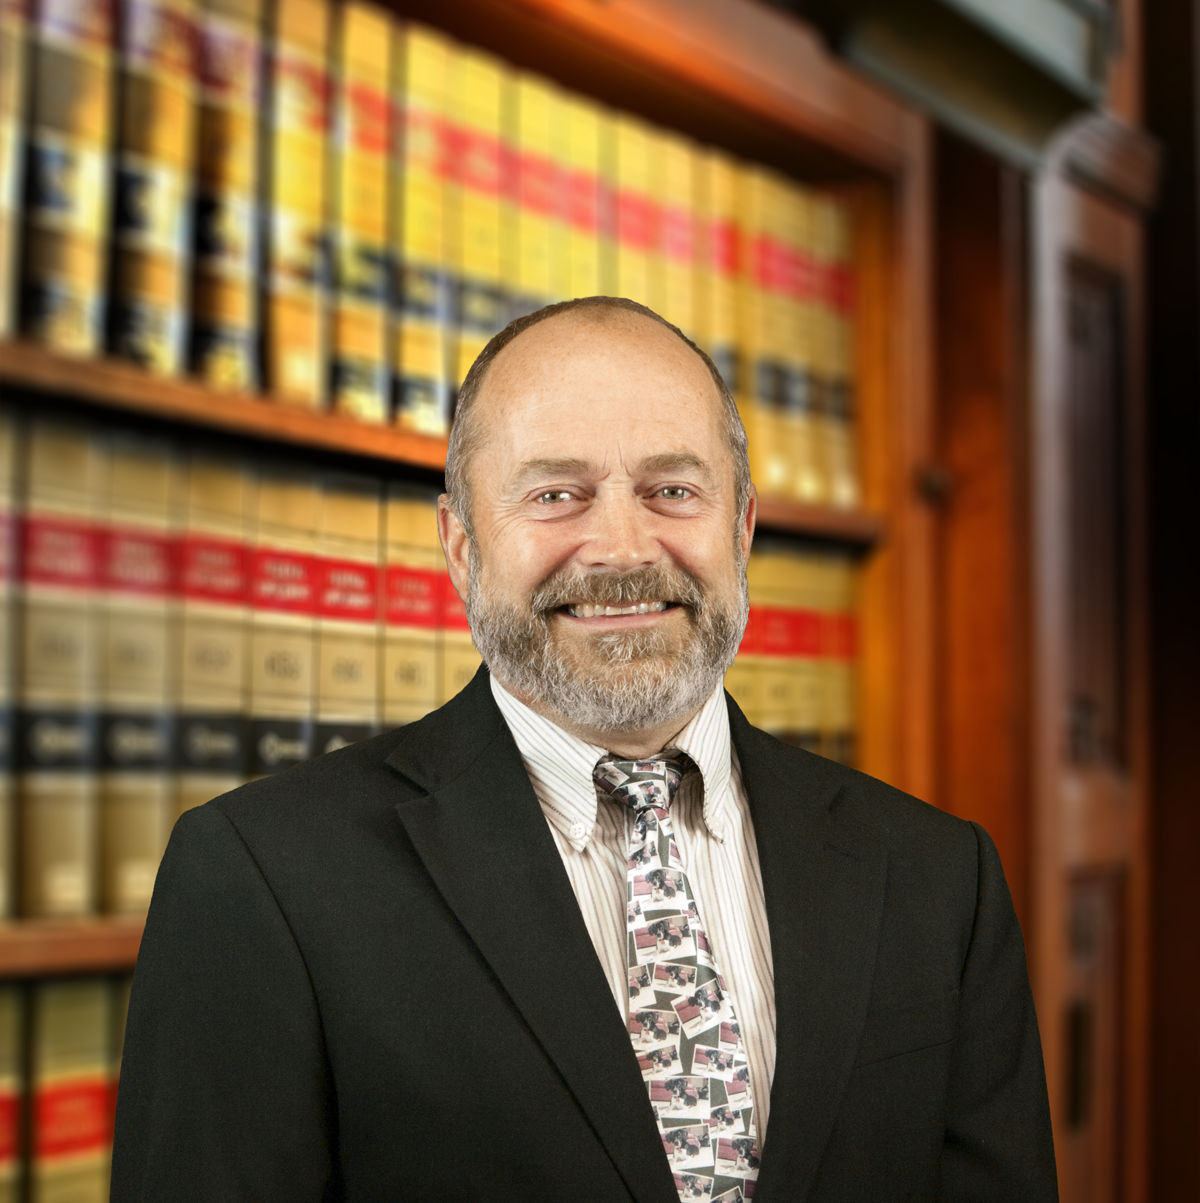 St Cloud MN Attorney Paul Jeddeloh